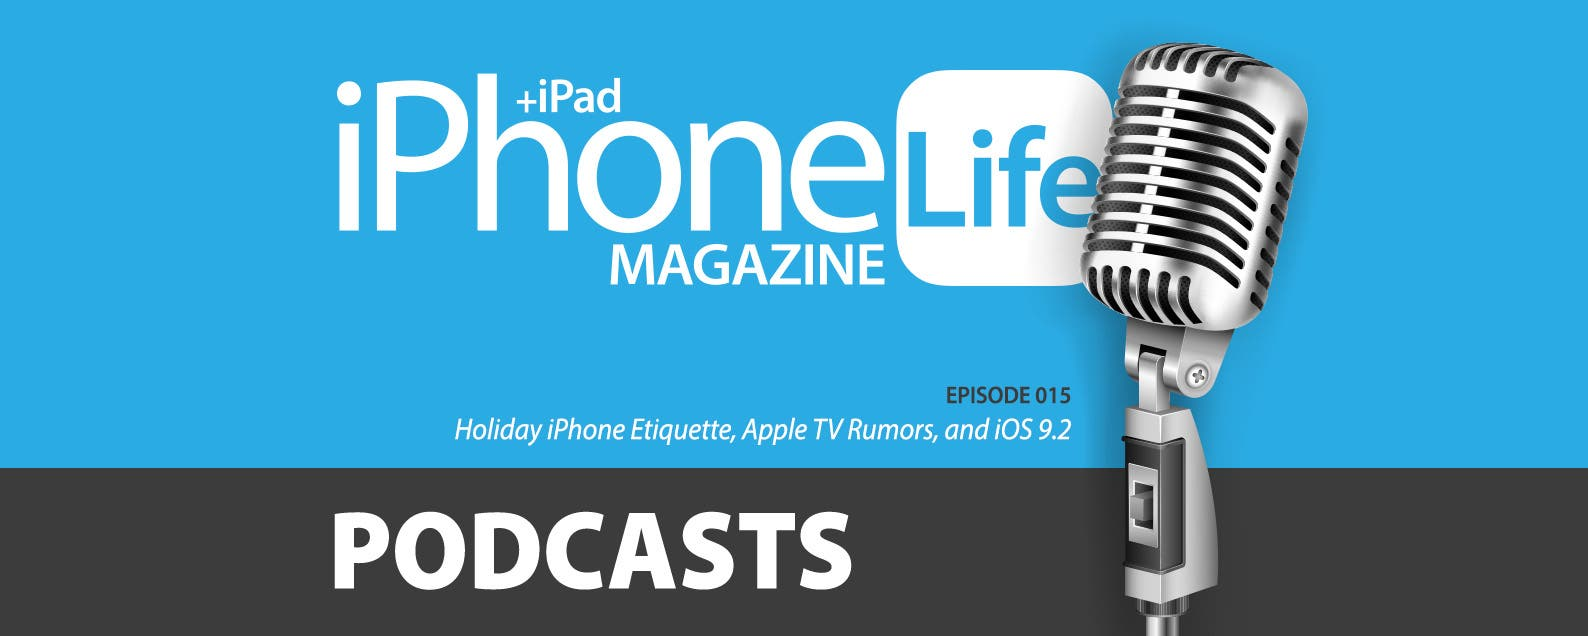 Holiday iPhone Etiquette, Apple TV Rumors, and iOS 9.2